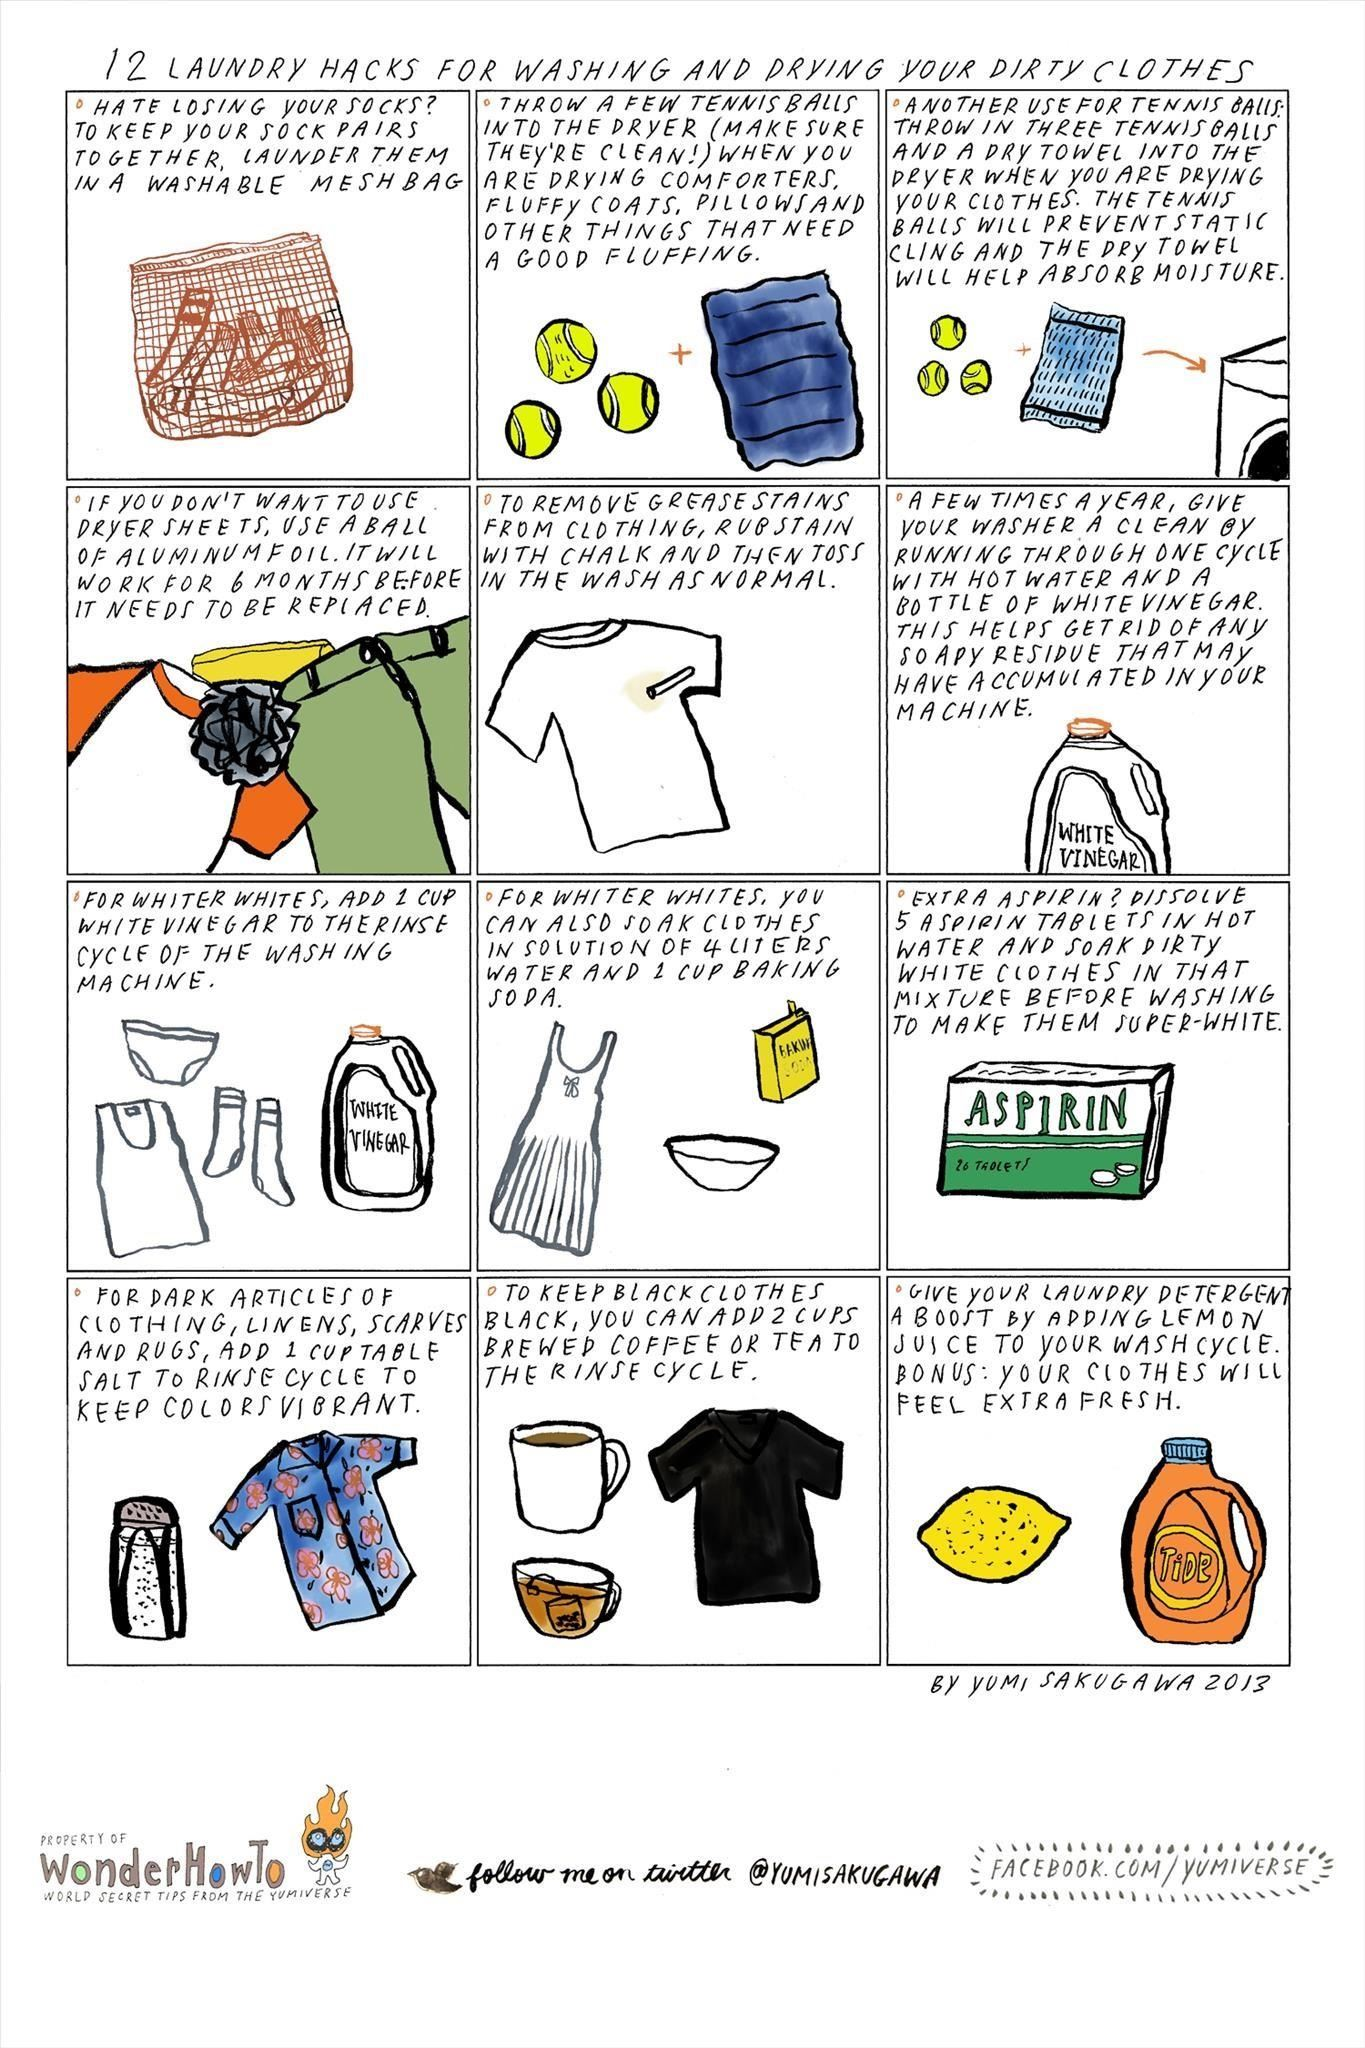 12 Laundry Hacks for Washing & Drying Your Dirty Clothes